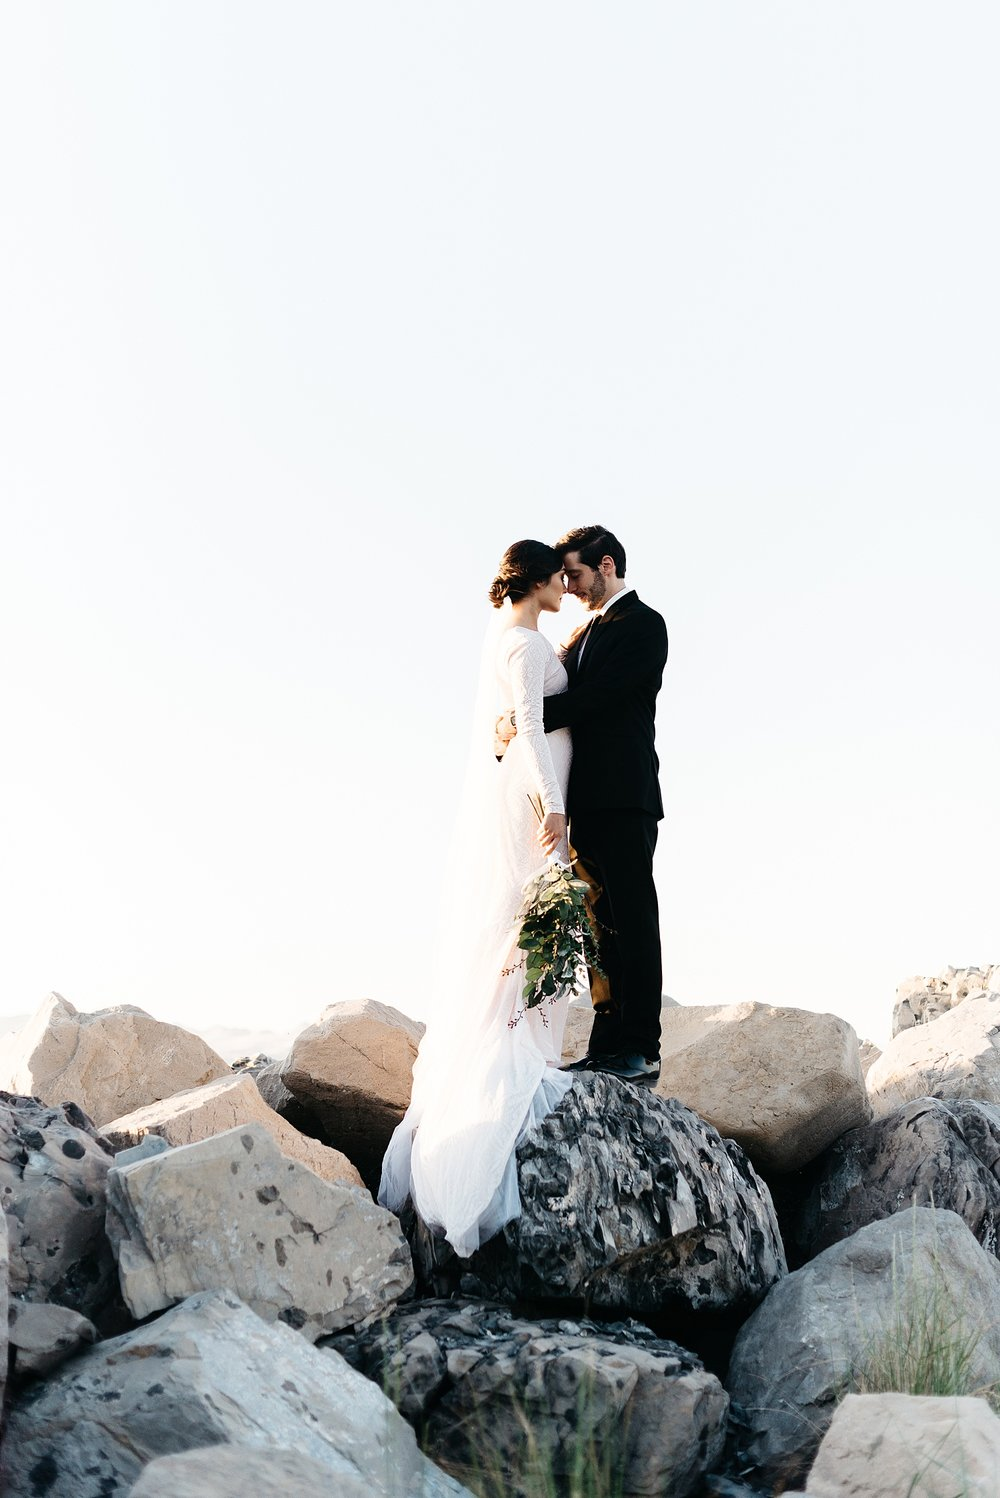 Zandra Barriga Photo - Cassie and Tristan Great Salt Lake Bridas_0009.jpg